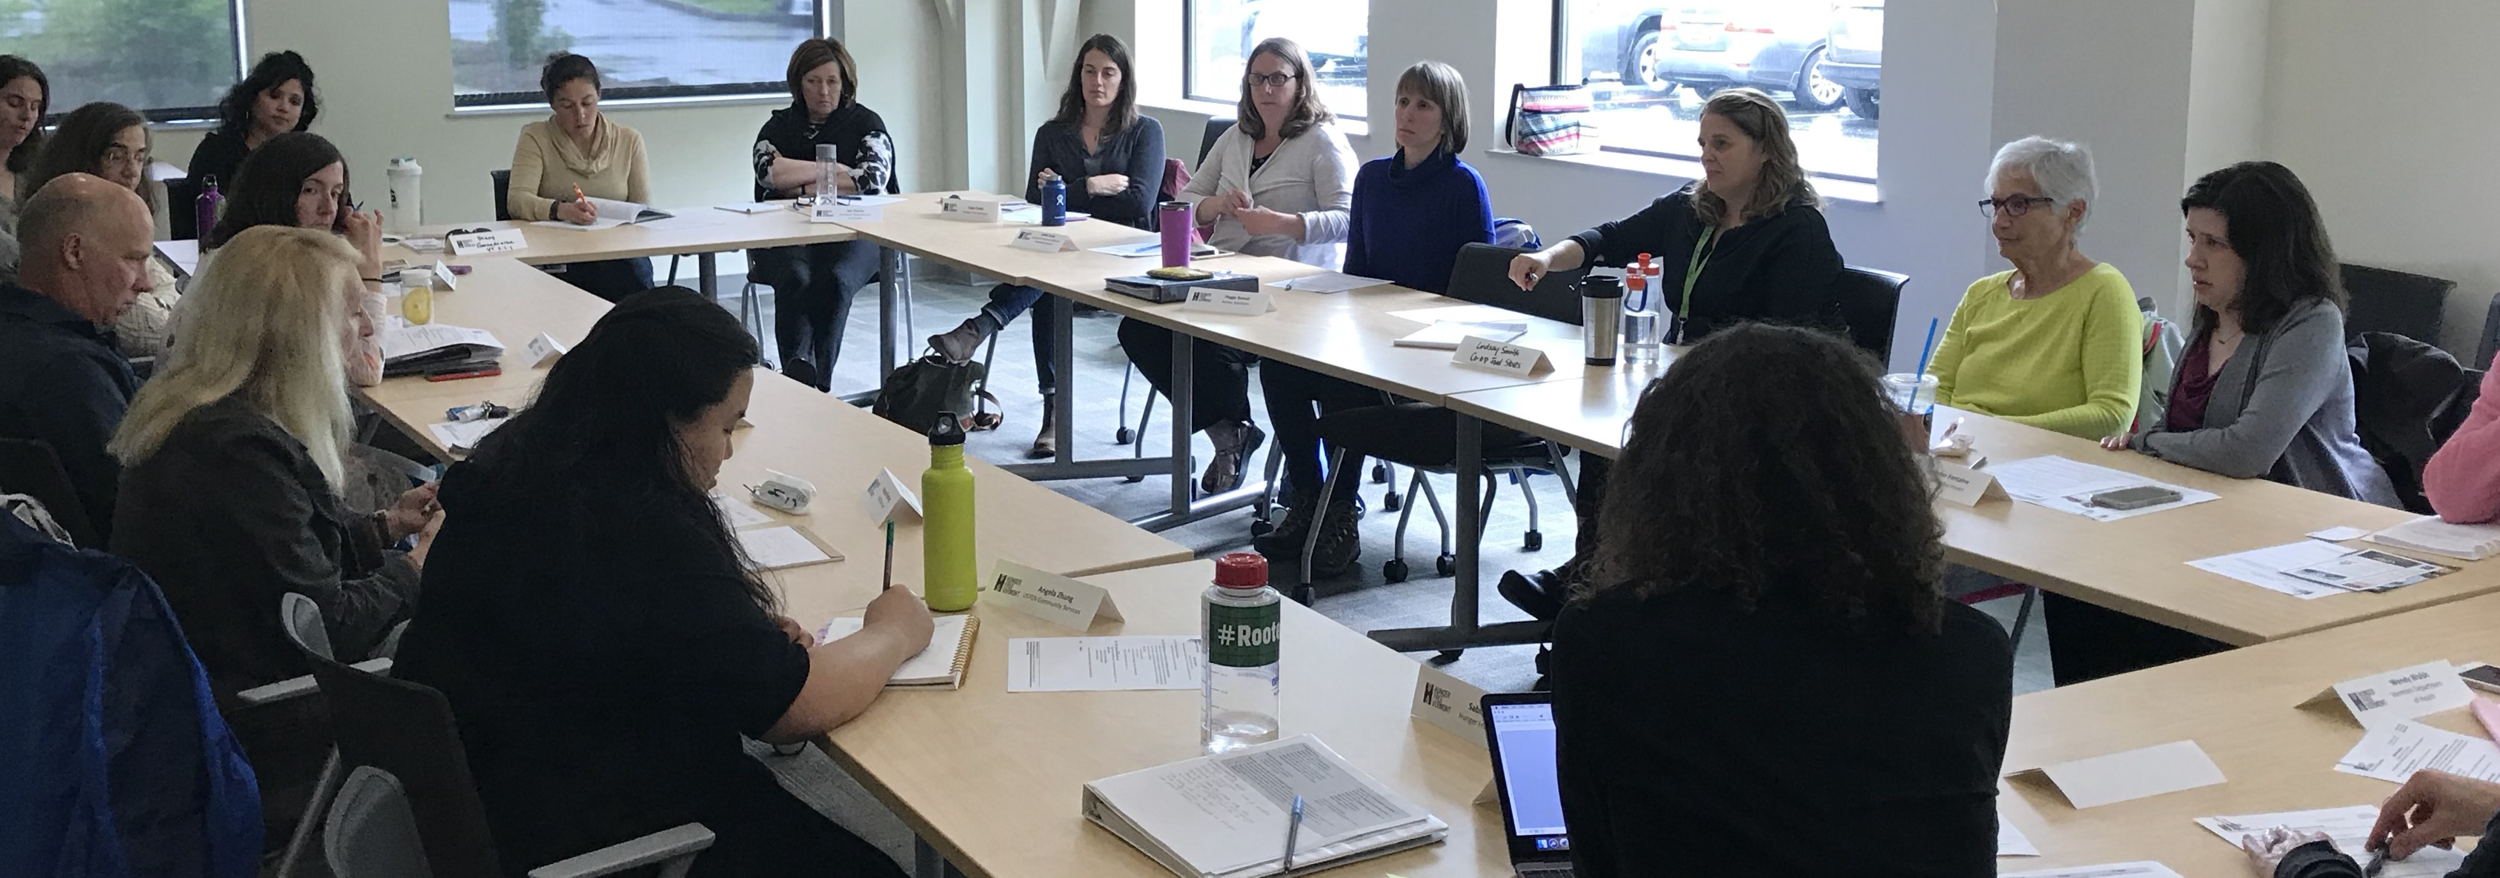 Hunger Council members share best practices around nutrition and cooking education at the June 2018 meeting.